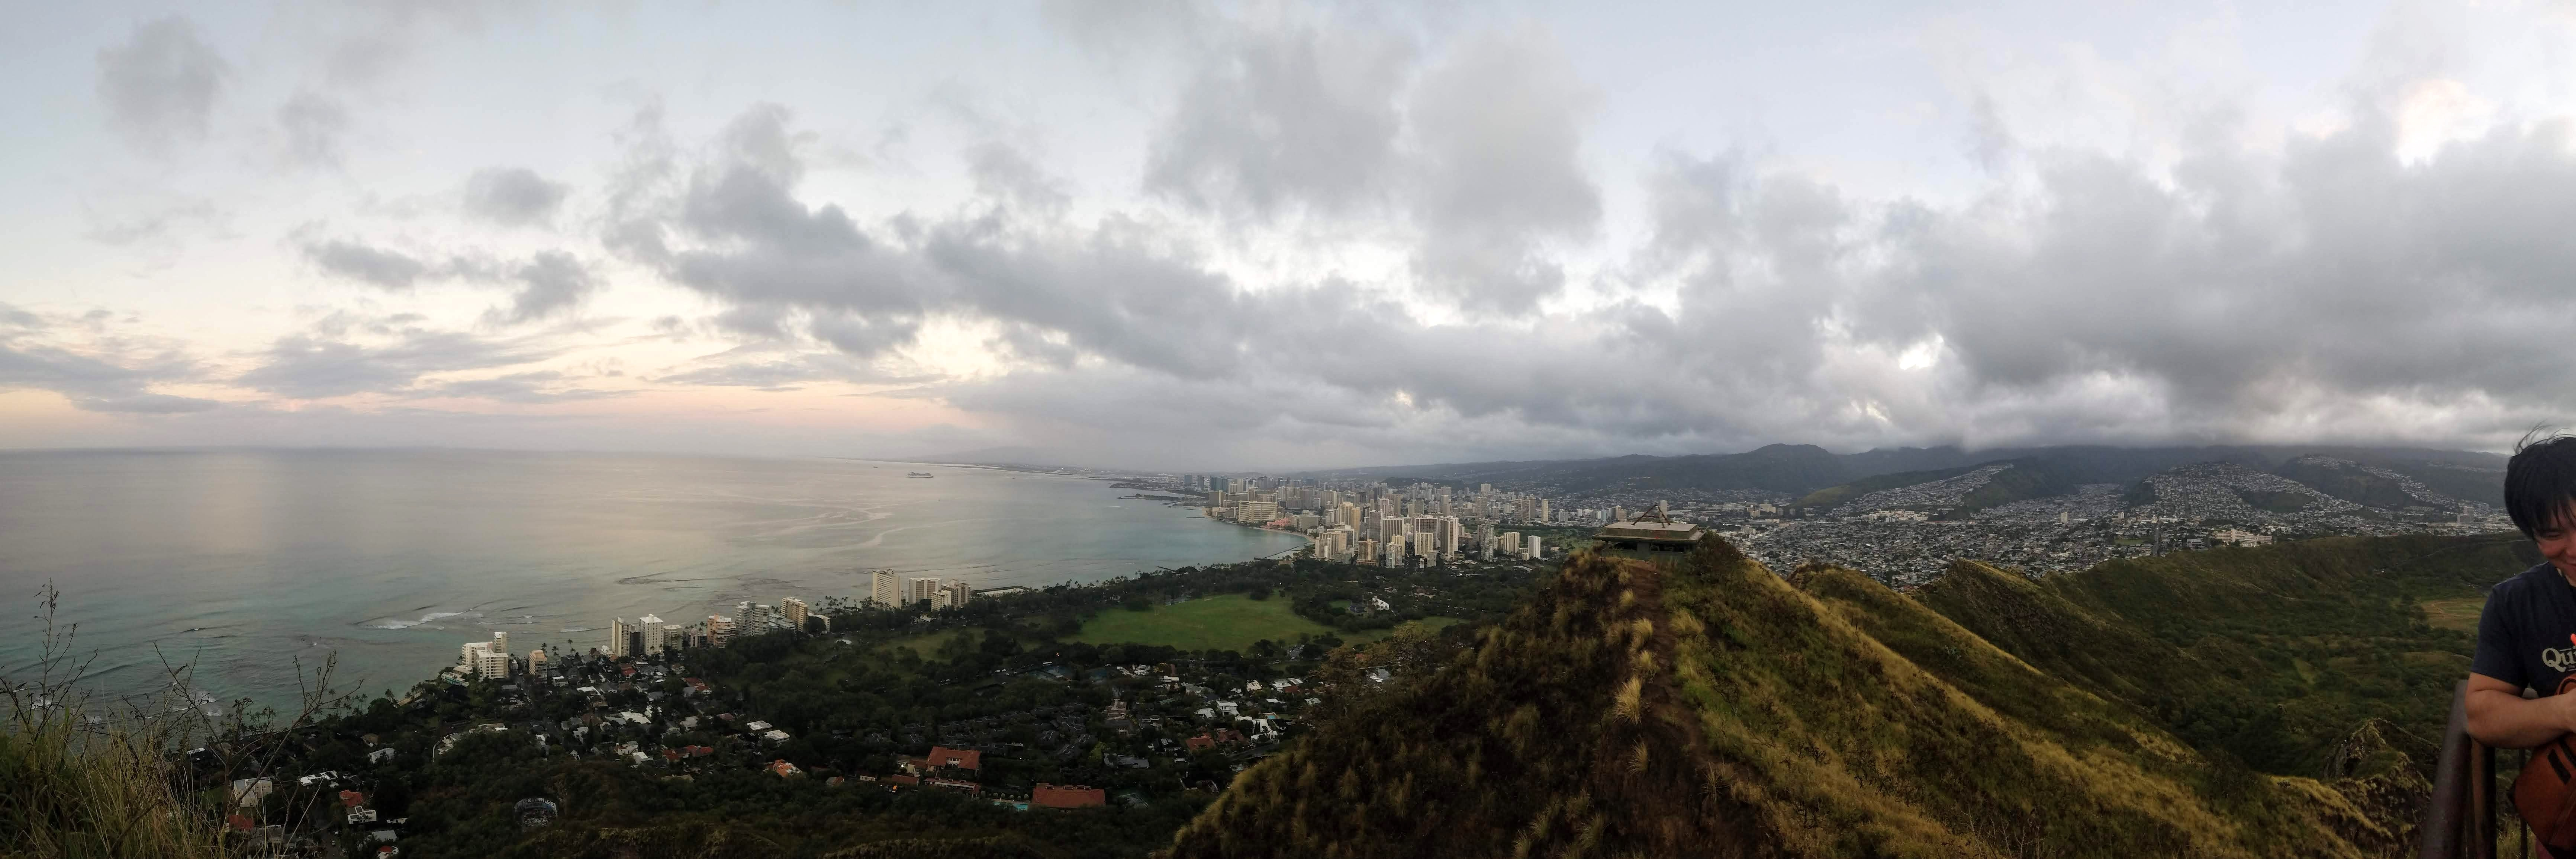 the view from the top of Diamond Head crater. this view is facing Waikiki. The ocean is to the left and the beach and Waikiki is to the right.